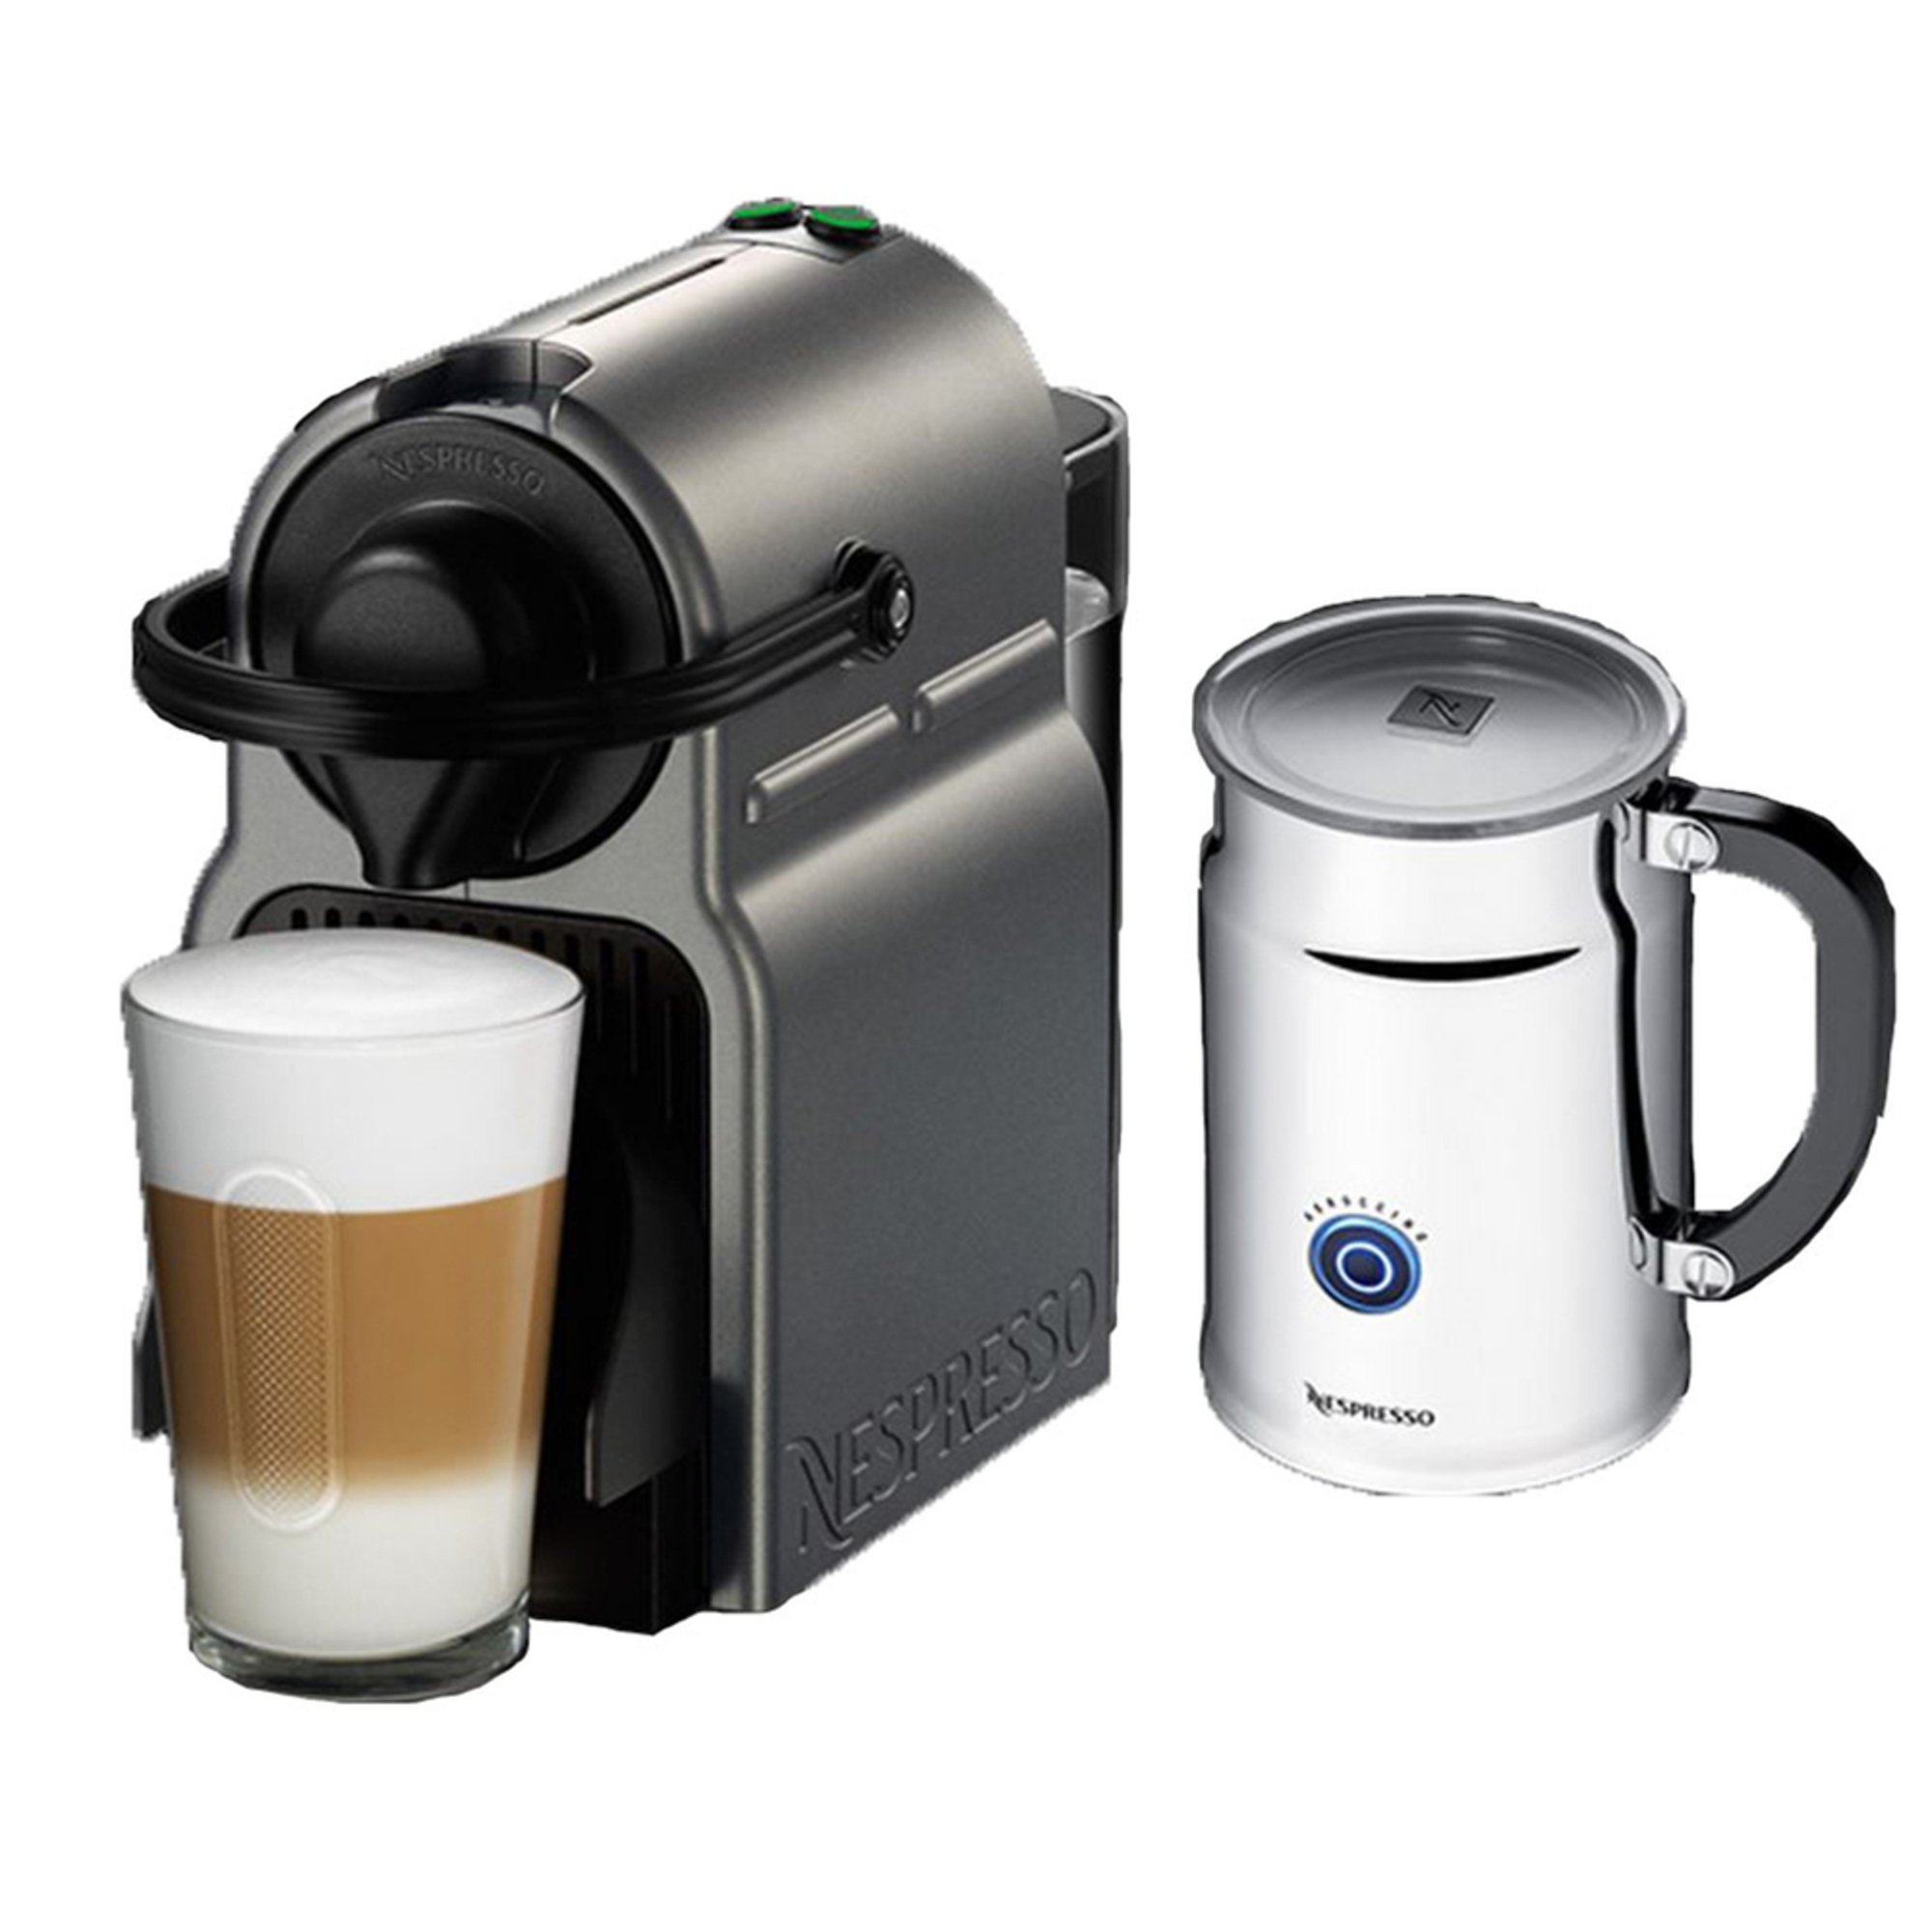 Nespresso Inissia Espresso Maker With Aeroccino Plus Milk Frother (a+c40-us-ti-ne) Espresso ...